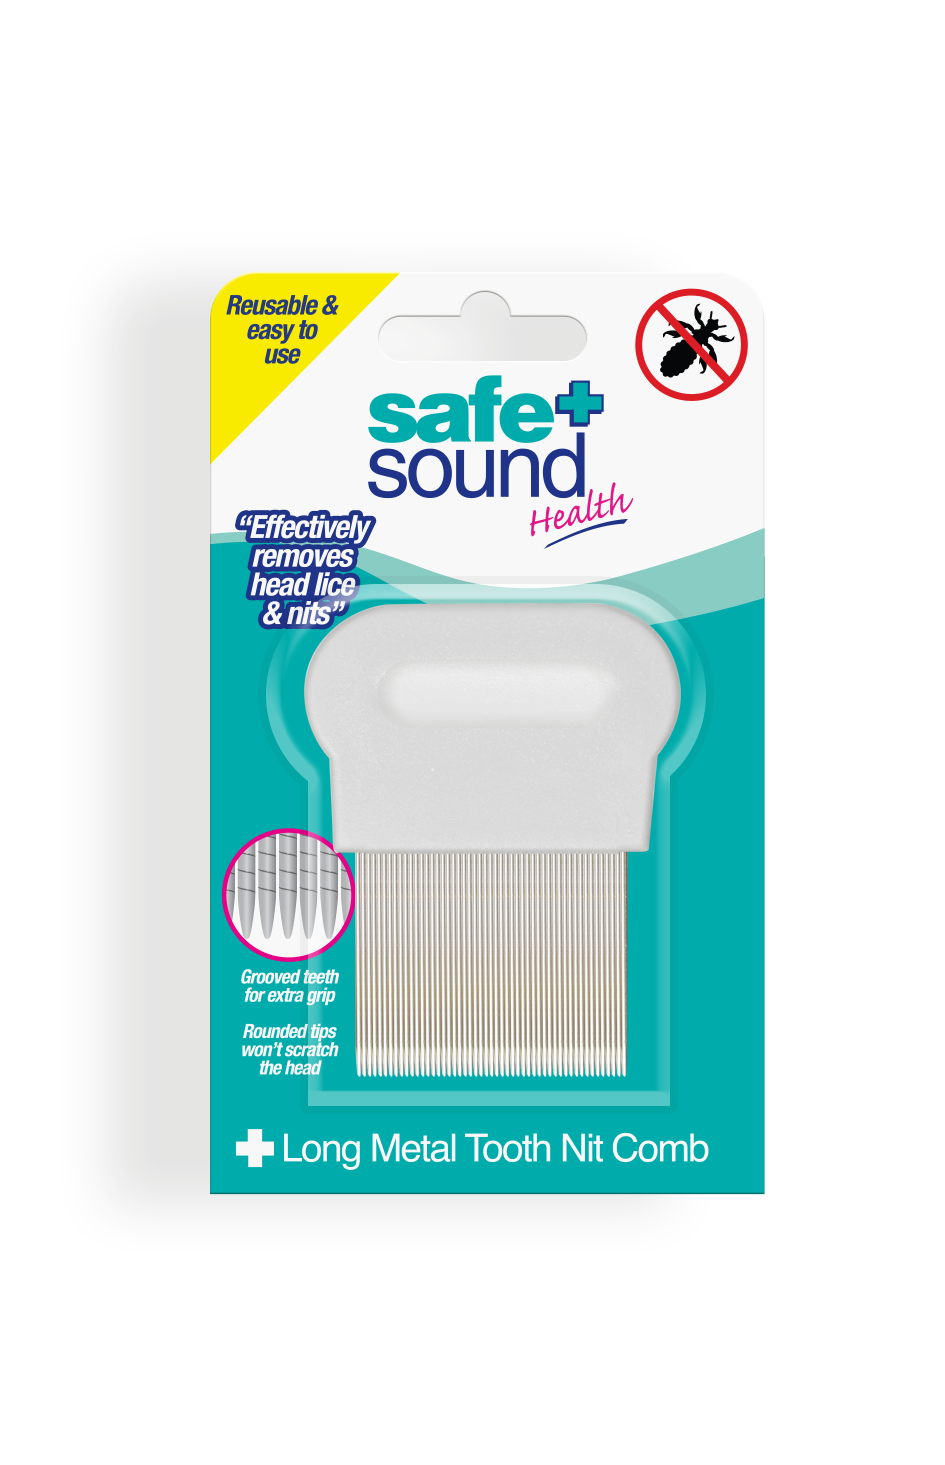 Safe and Sound Health Long Tooth Metal Nit Comb